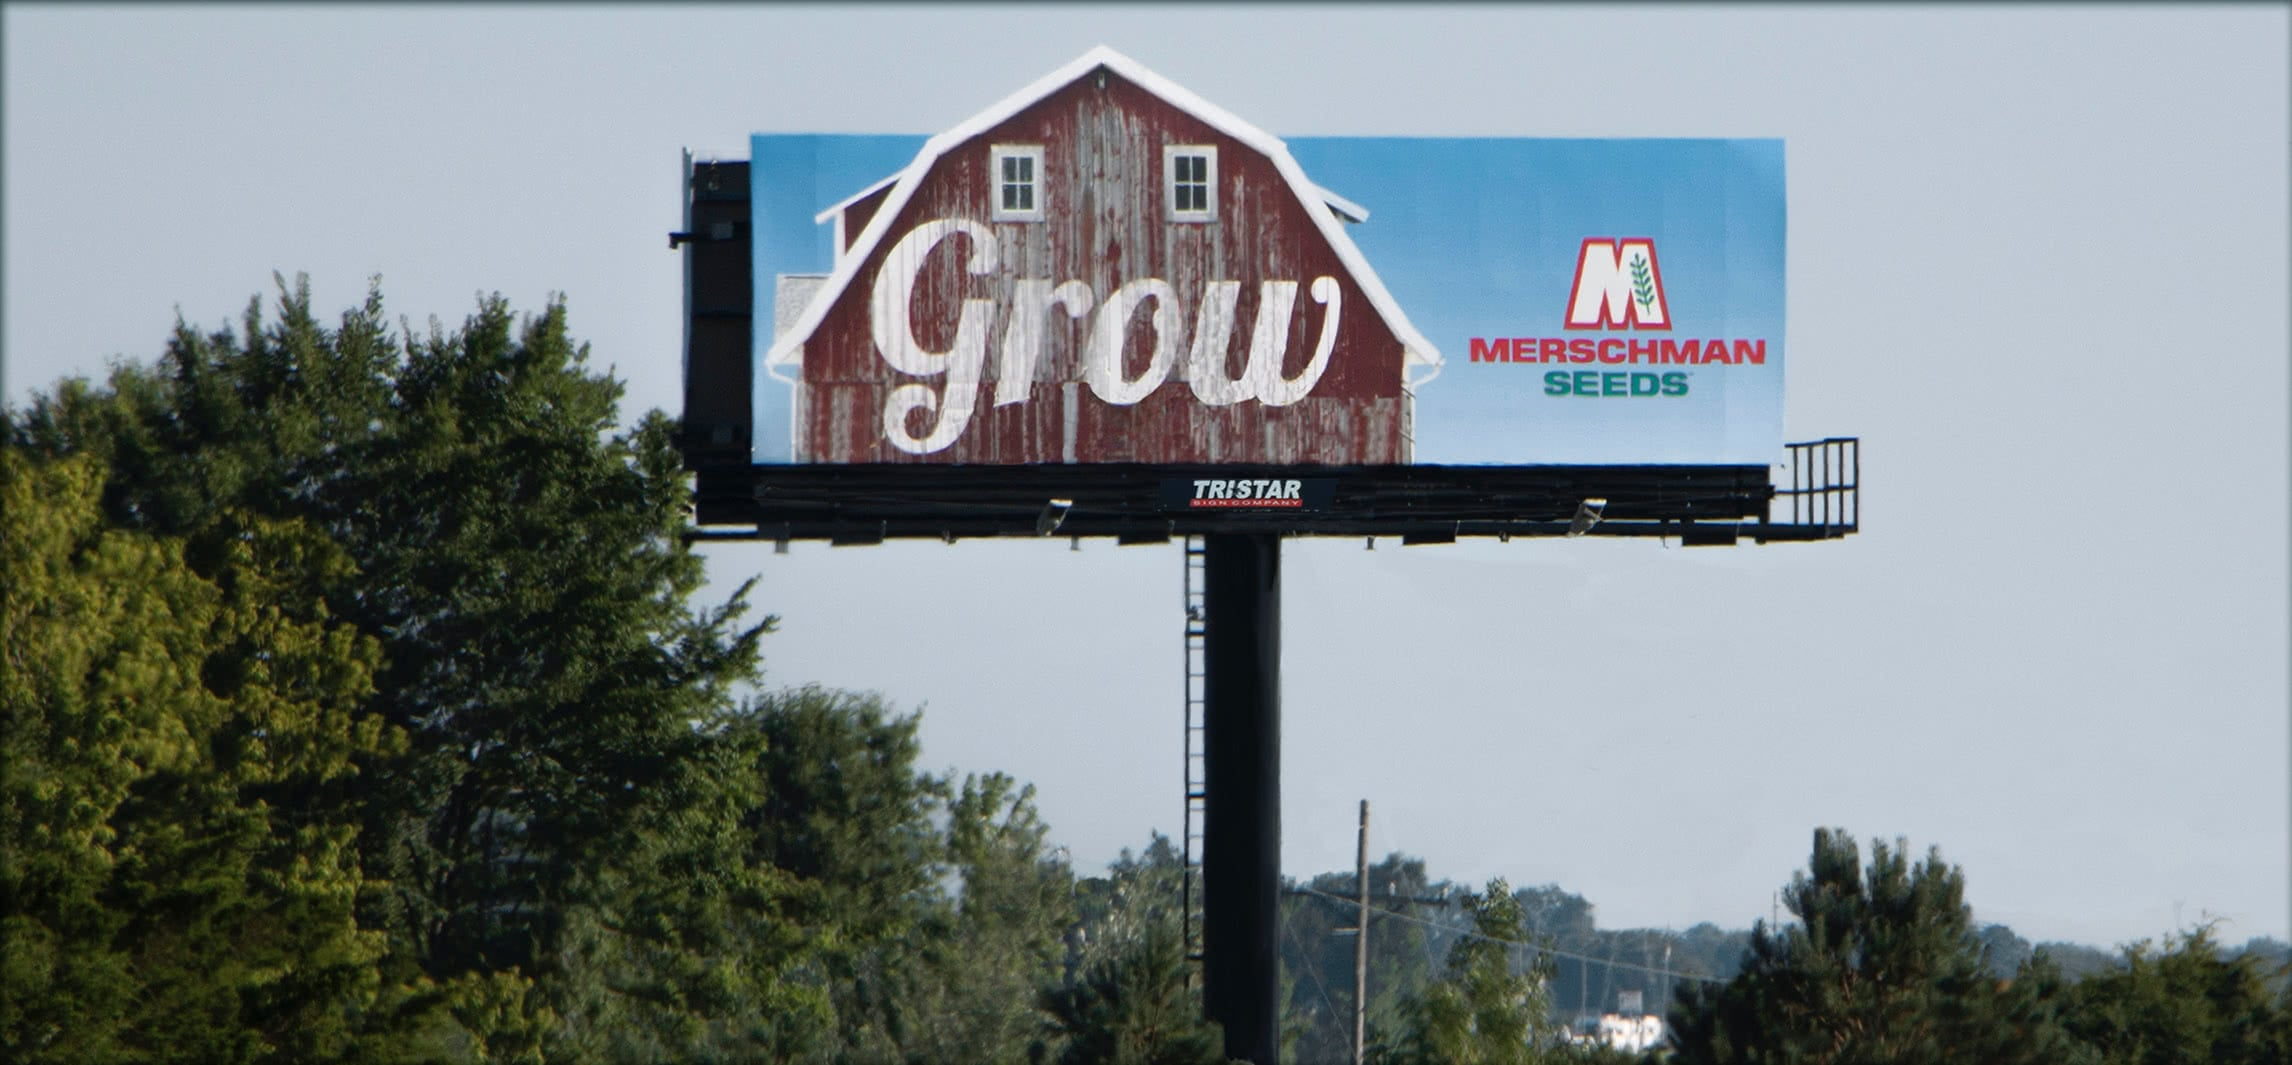 Merschman Seeds Billboard